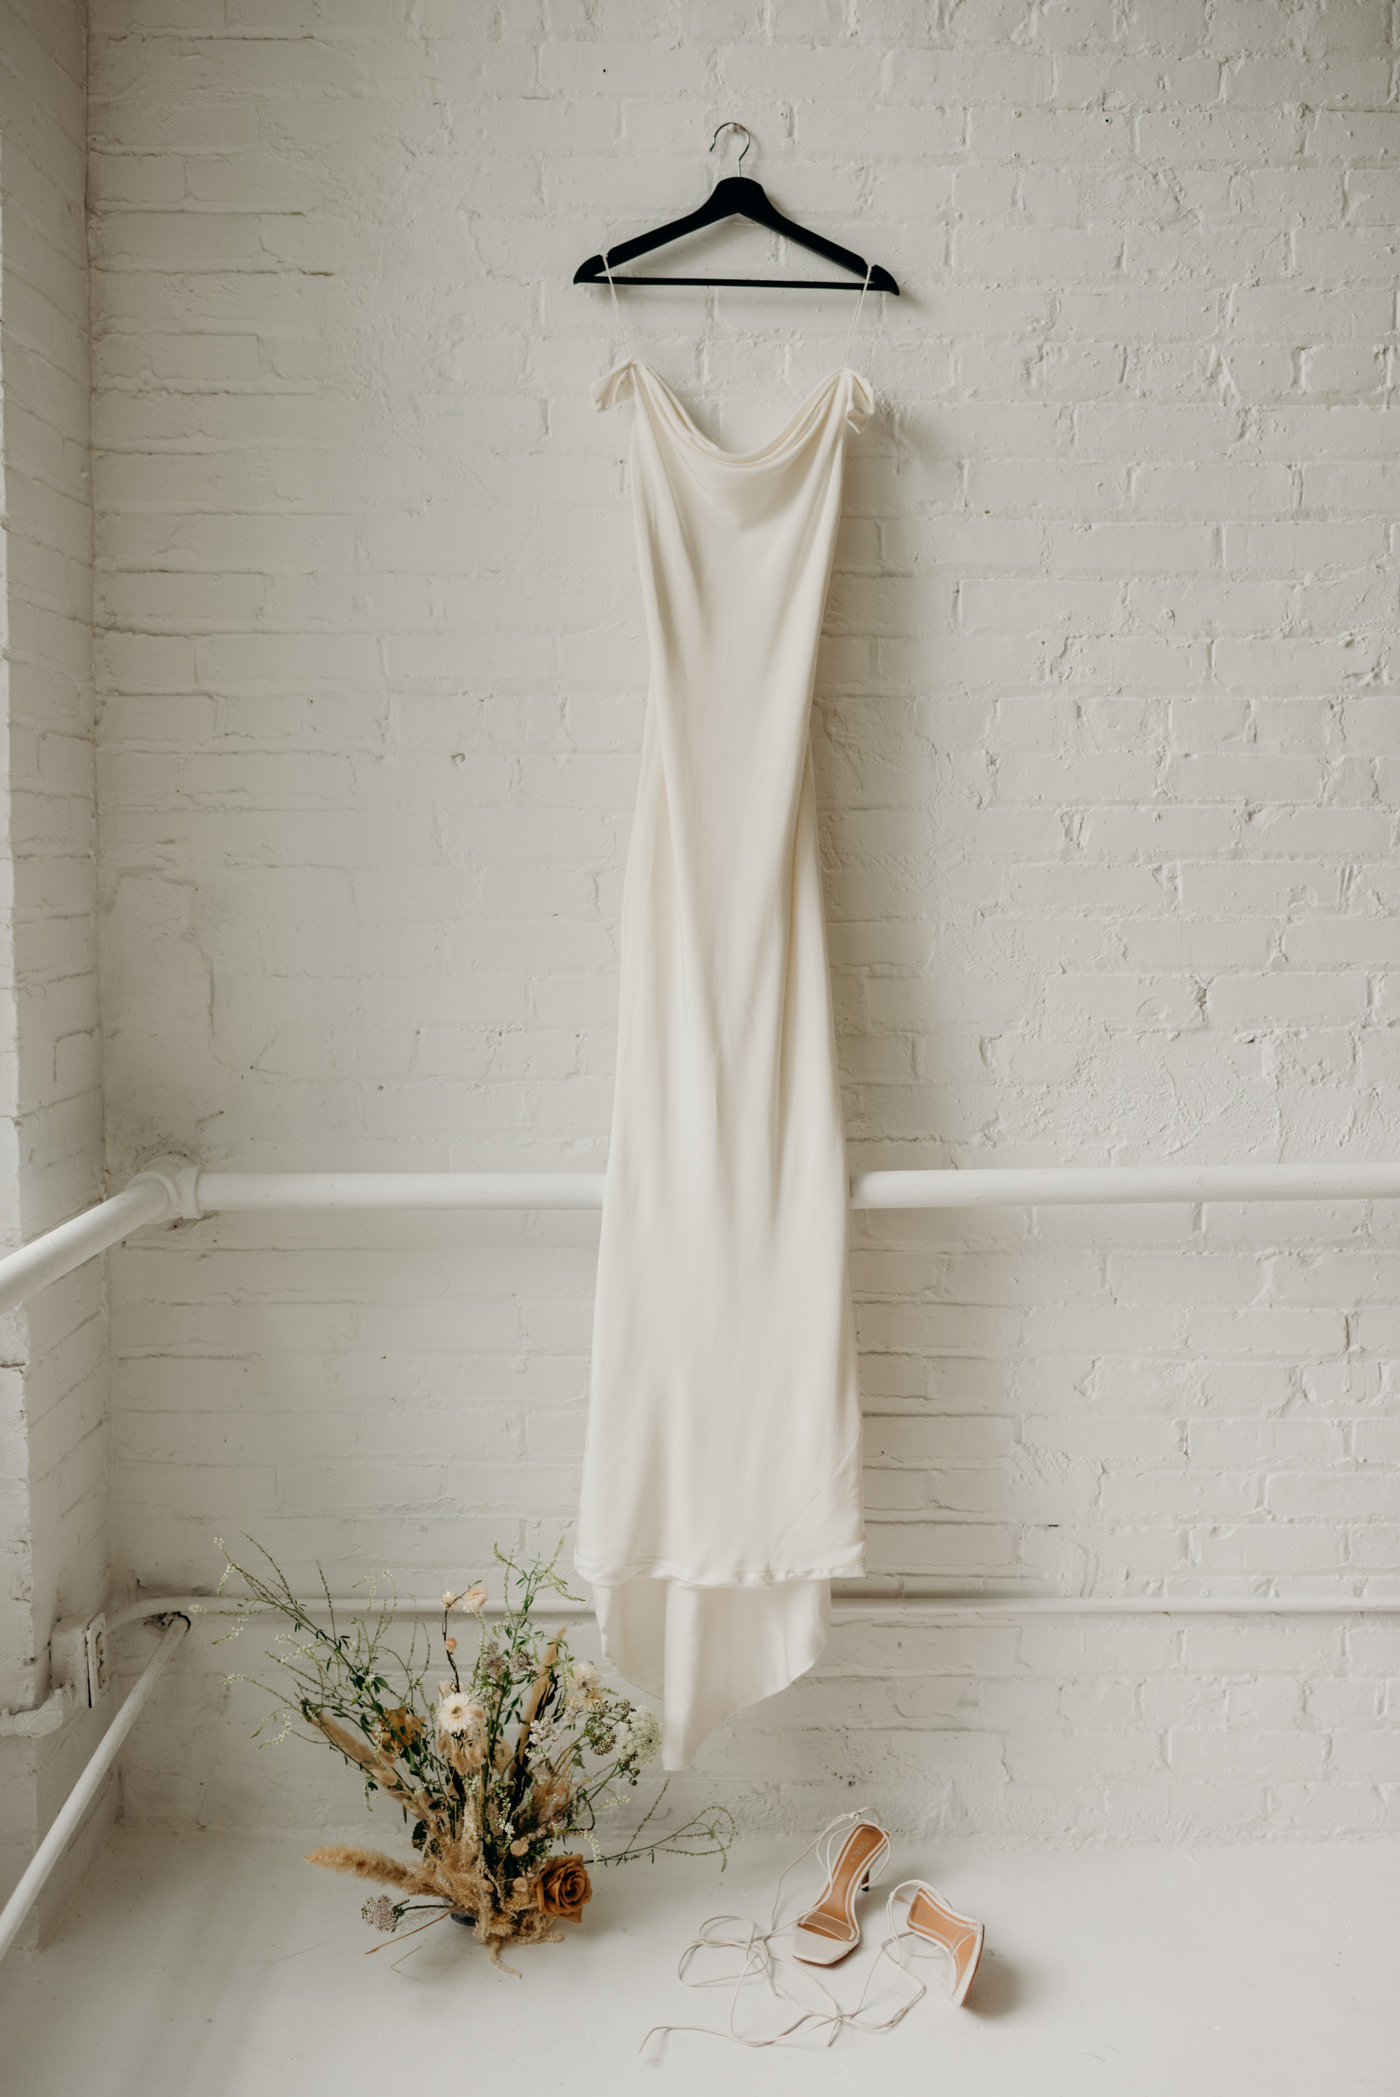 Savannah Miller Bridal wedding dress hanging on white brick wall with florals on ground